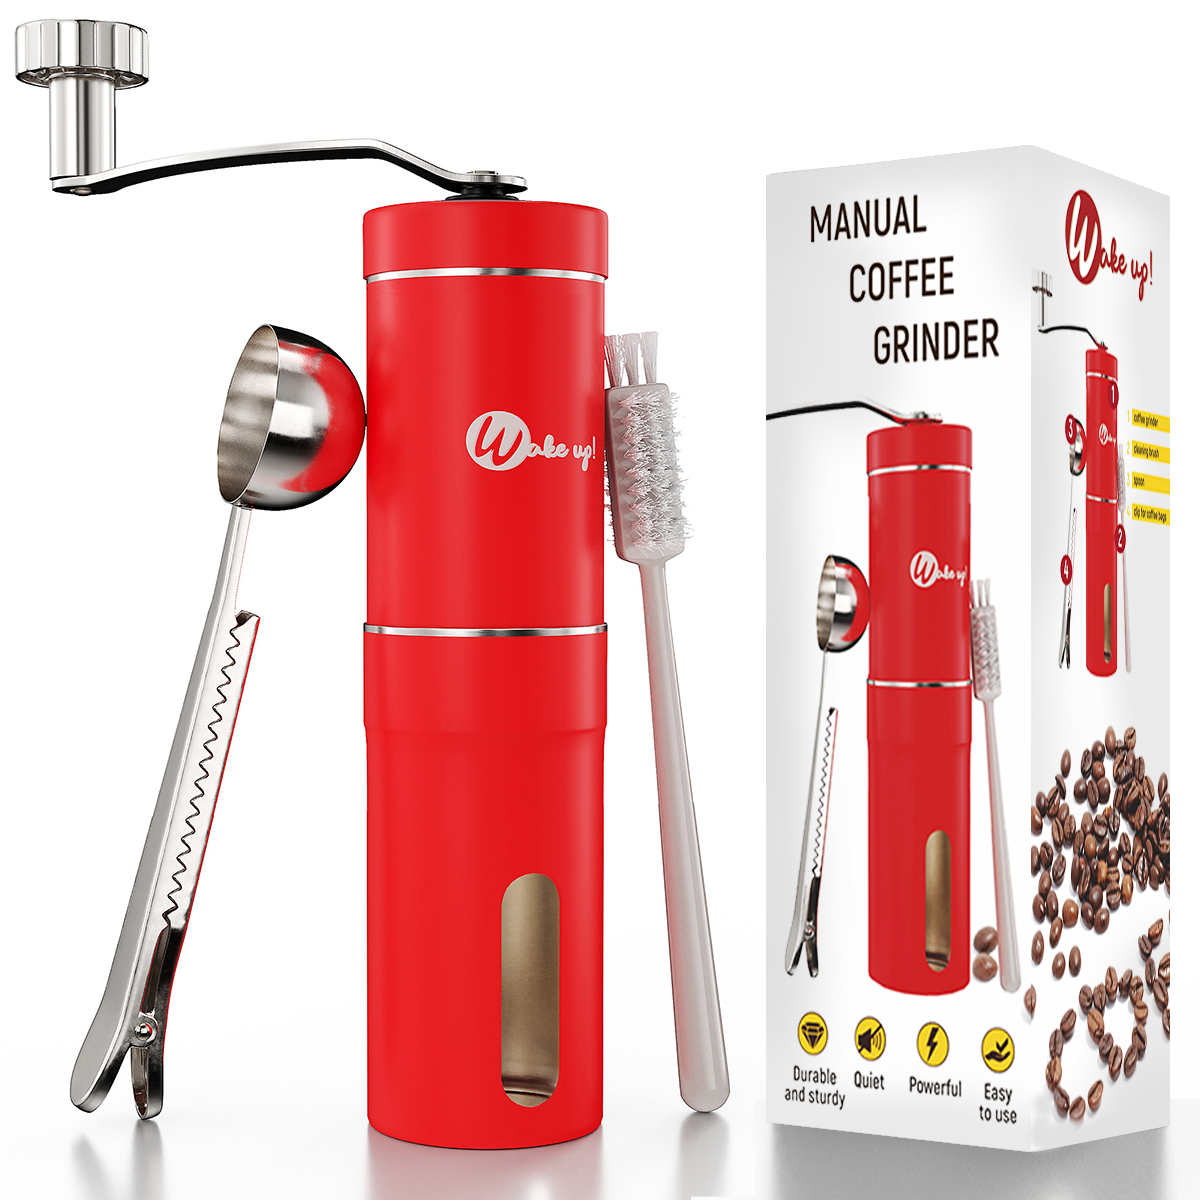 Wakeup Introduces Hand Cranked, Red Stainless Steel Manual Coffee Grinder with Discounts